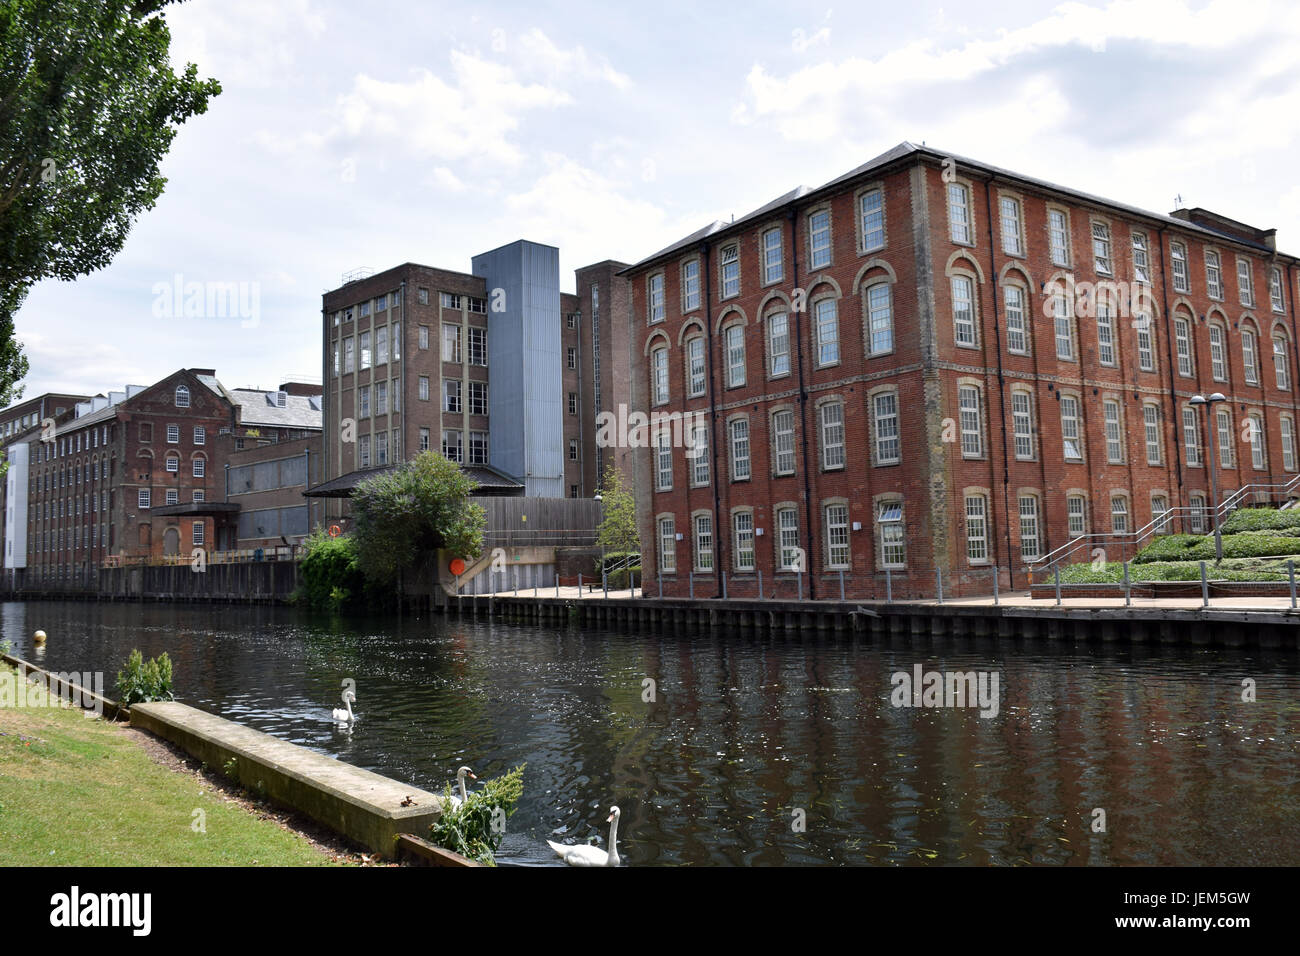 New Housing Developments On Bank Of River Wensum Norwich